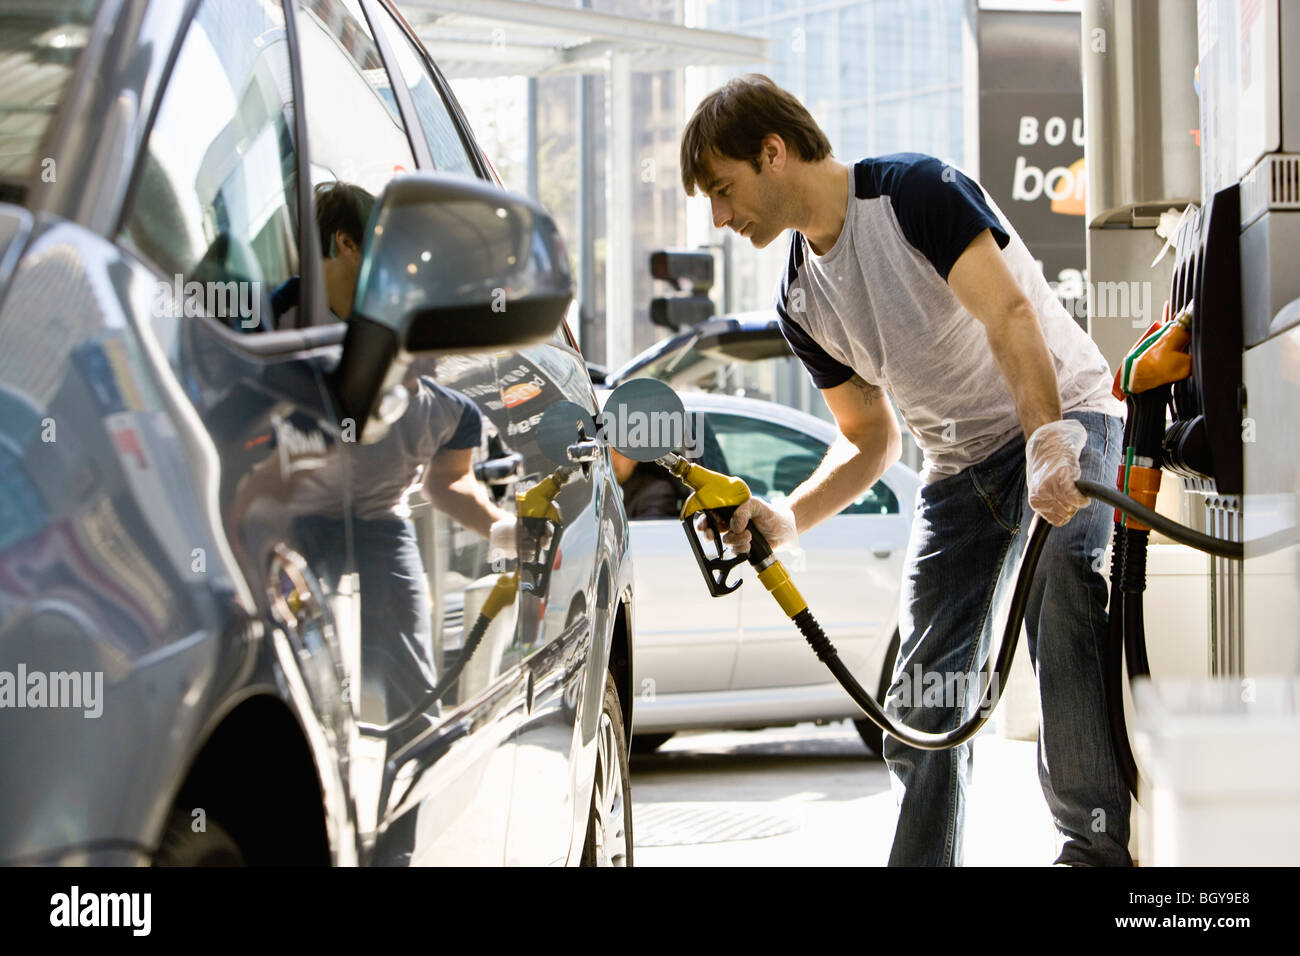 Man refueling vehicle at gas station - Stock Image